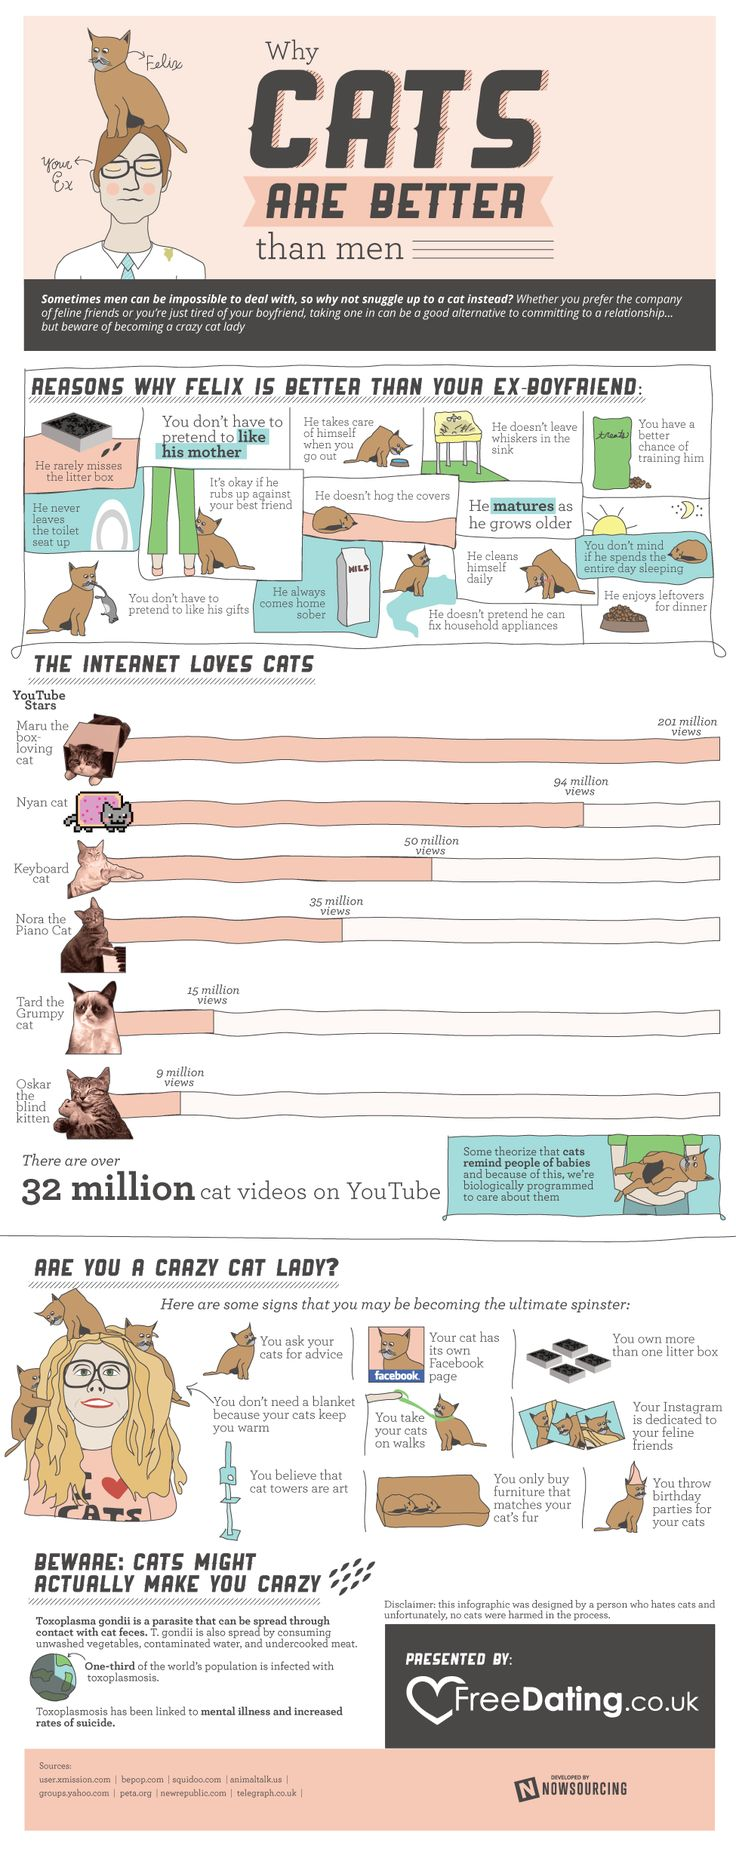 This infographic takes a look at why cats are better than men, and how to find out if you are a crazy cat lady.